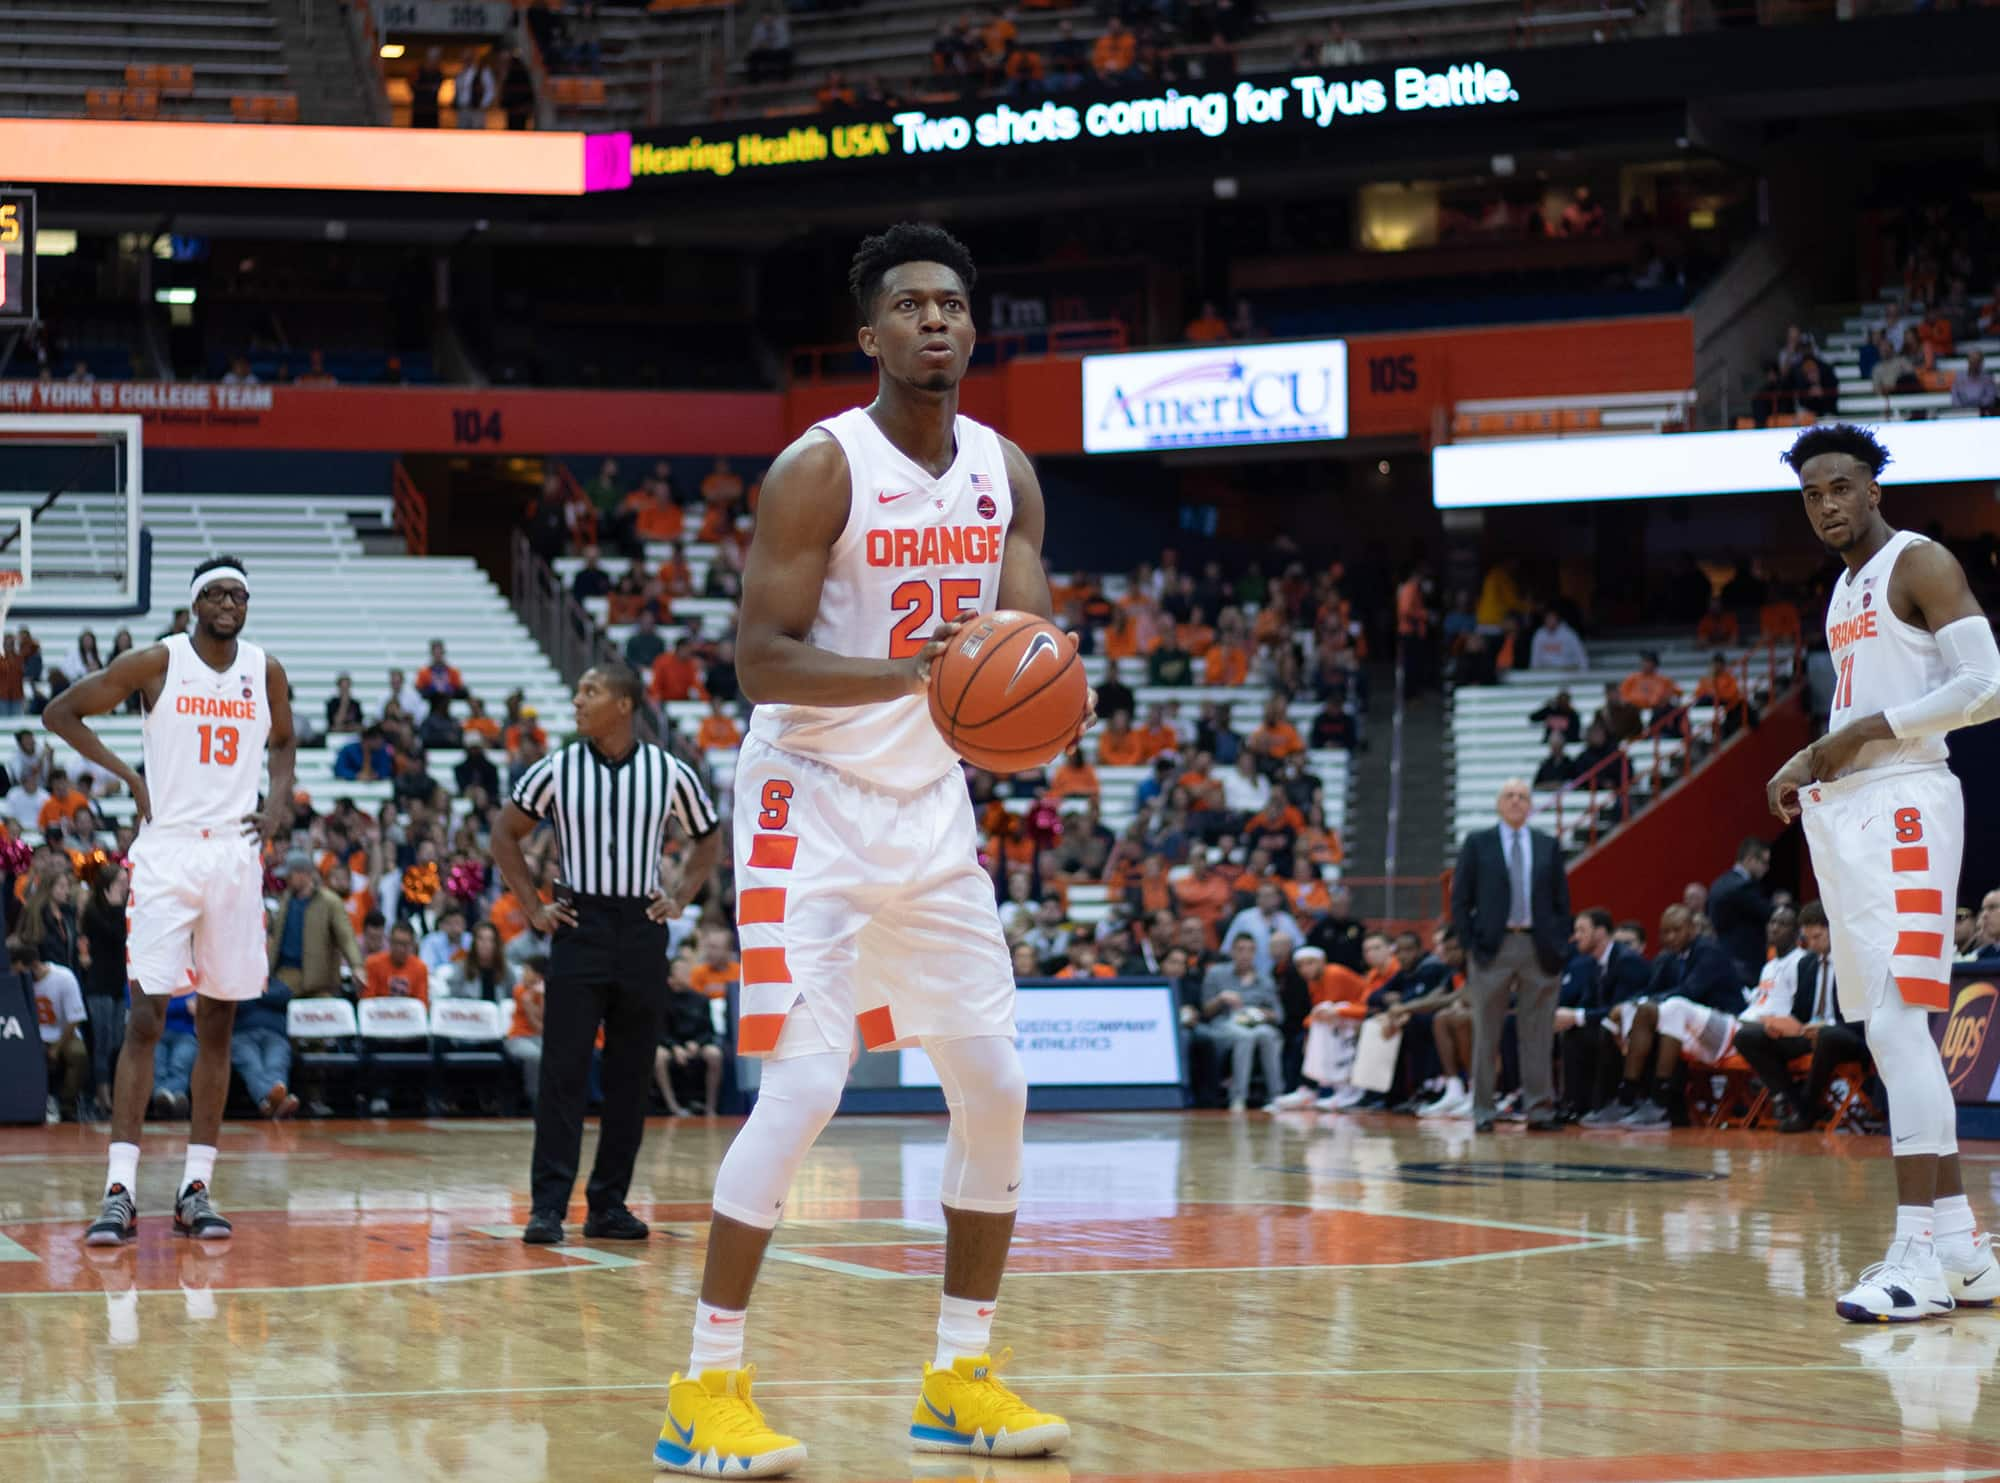 Tyus Battle prepares to shoot a free throw during Syracuse's exhibition opener against St. Rose.